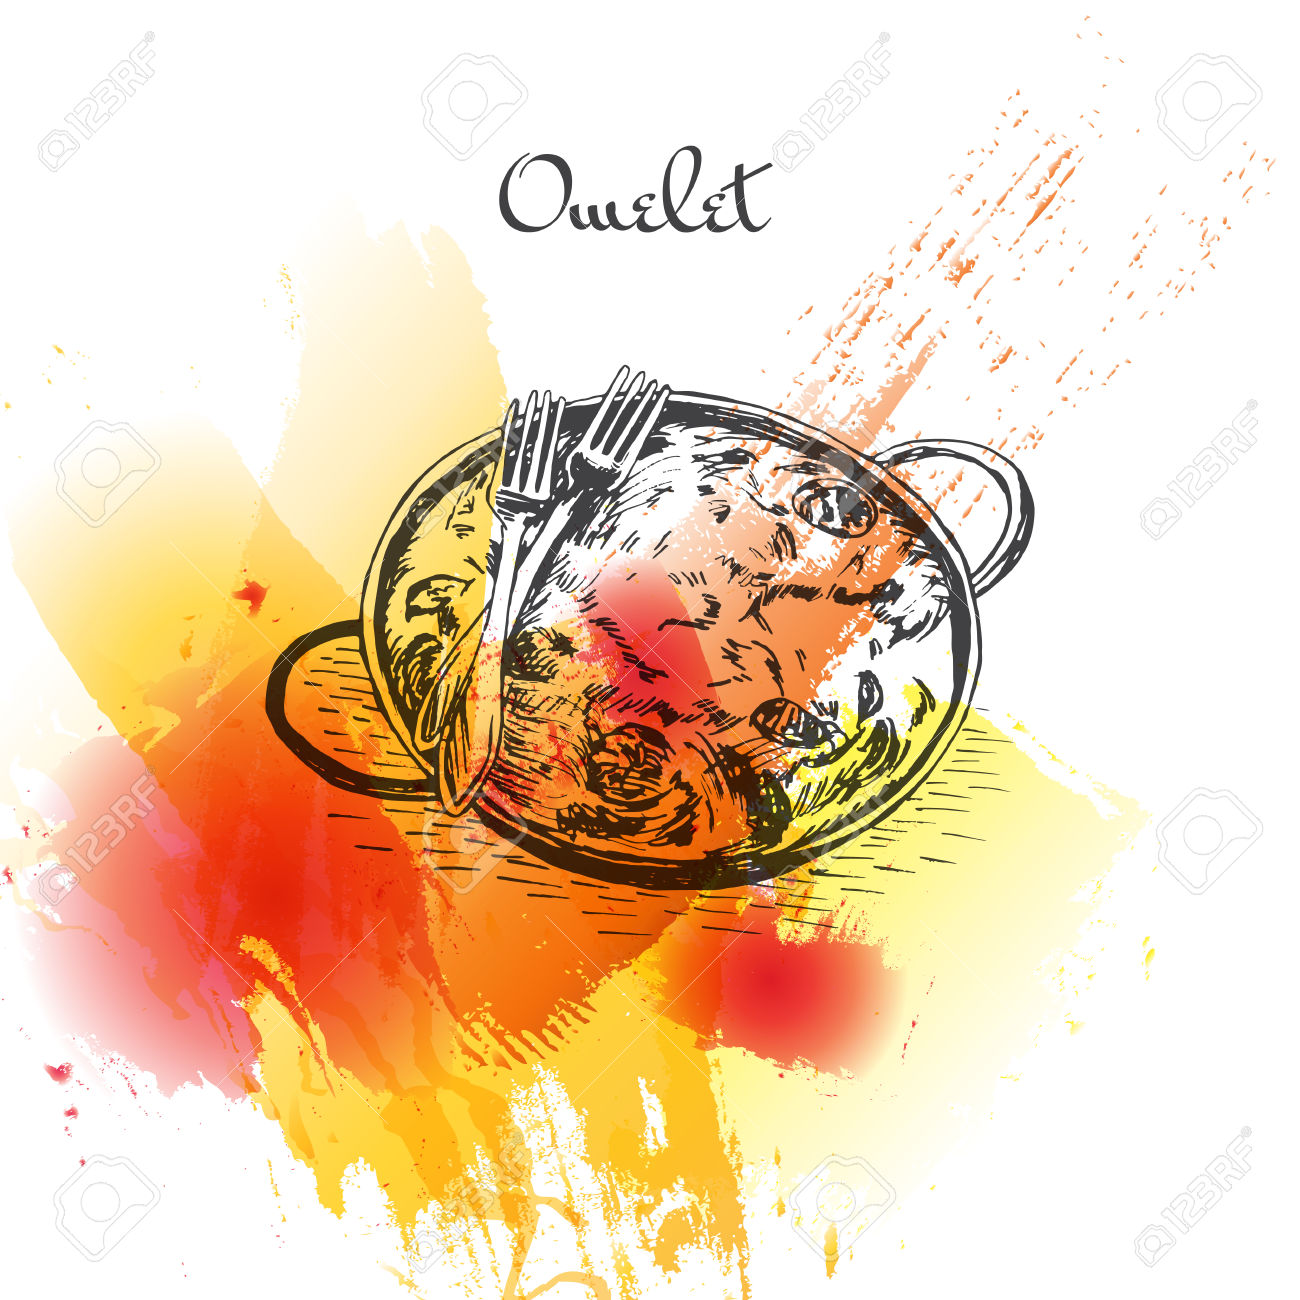 Omelet Colorful Watercolor Effect Illustration. Vector.